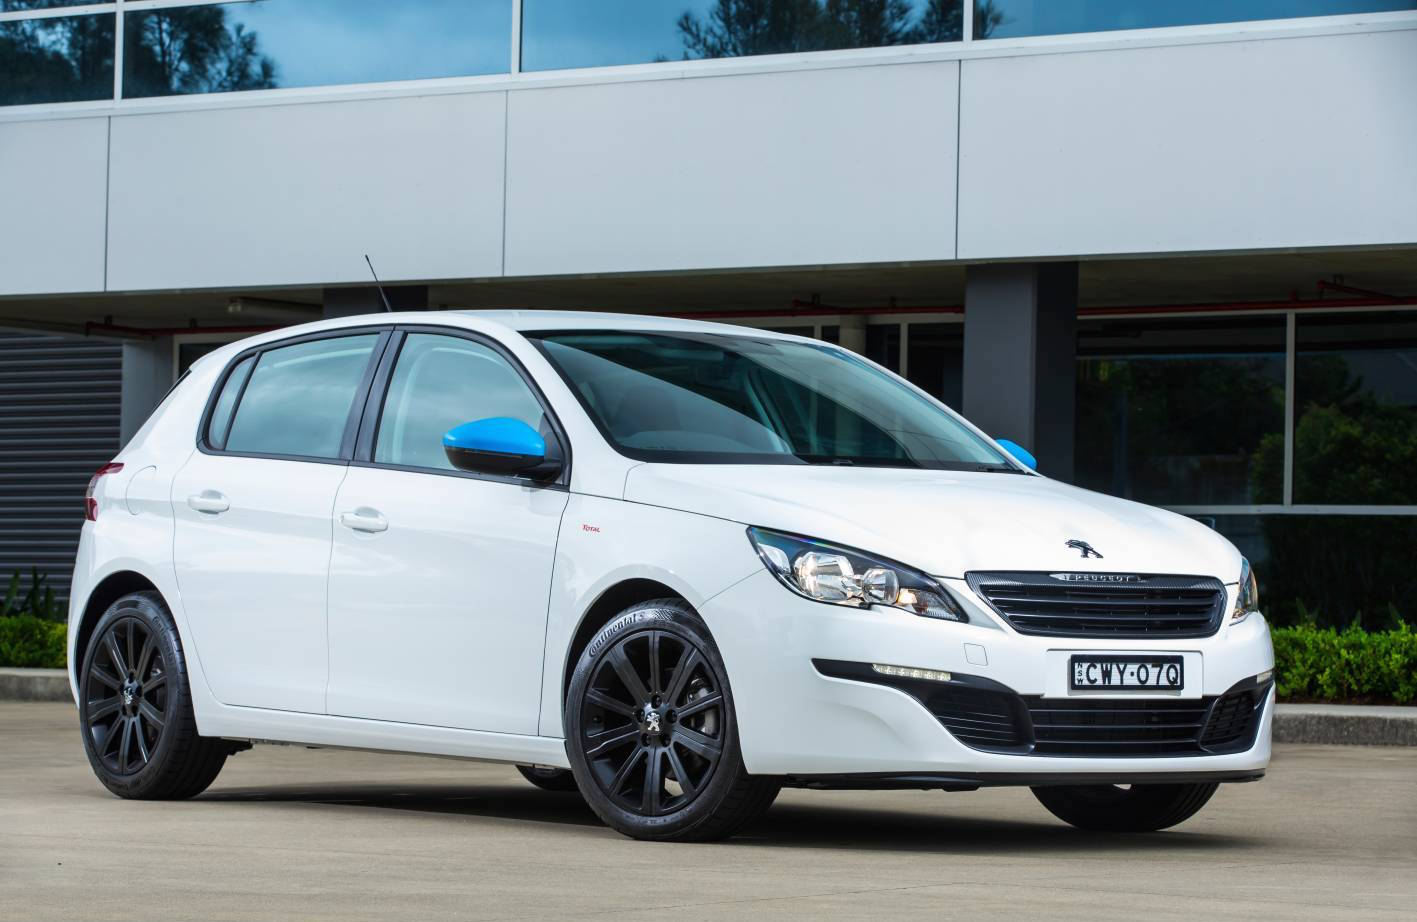 peugeot 308 total package special edition on sale in australia performancedrive. Black Bedroom Furniture Sets. Home Design Ideas